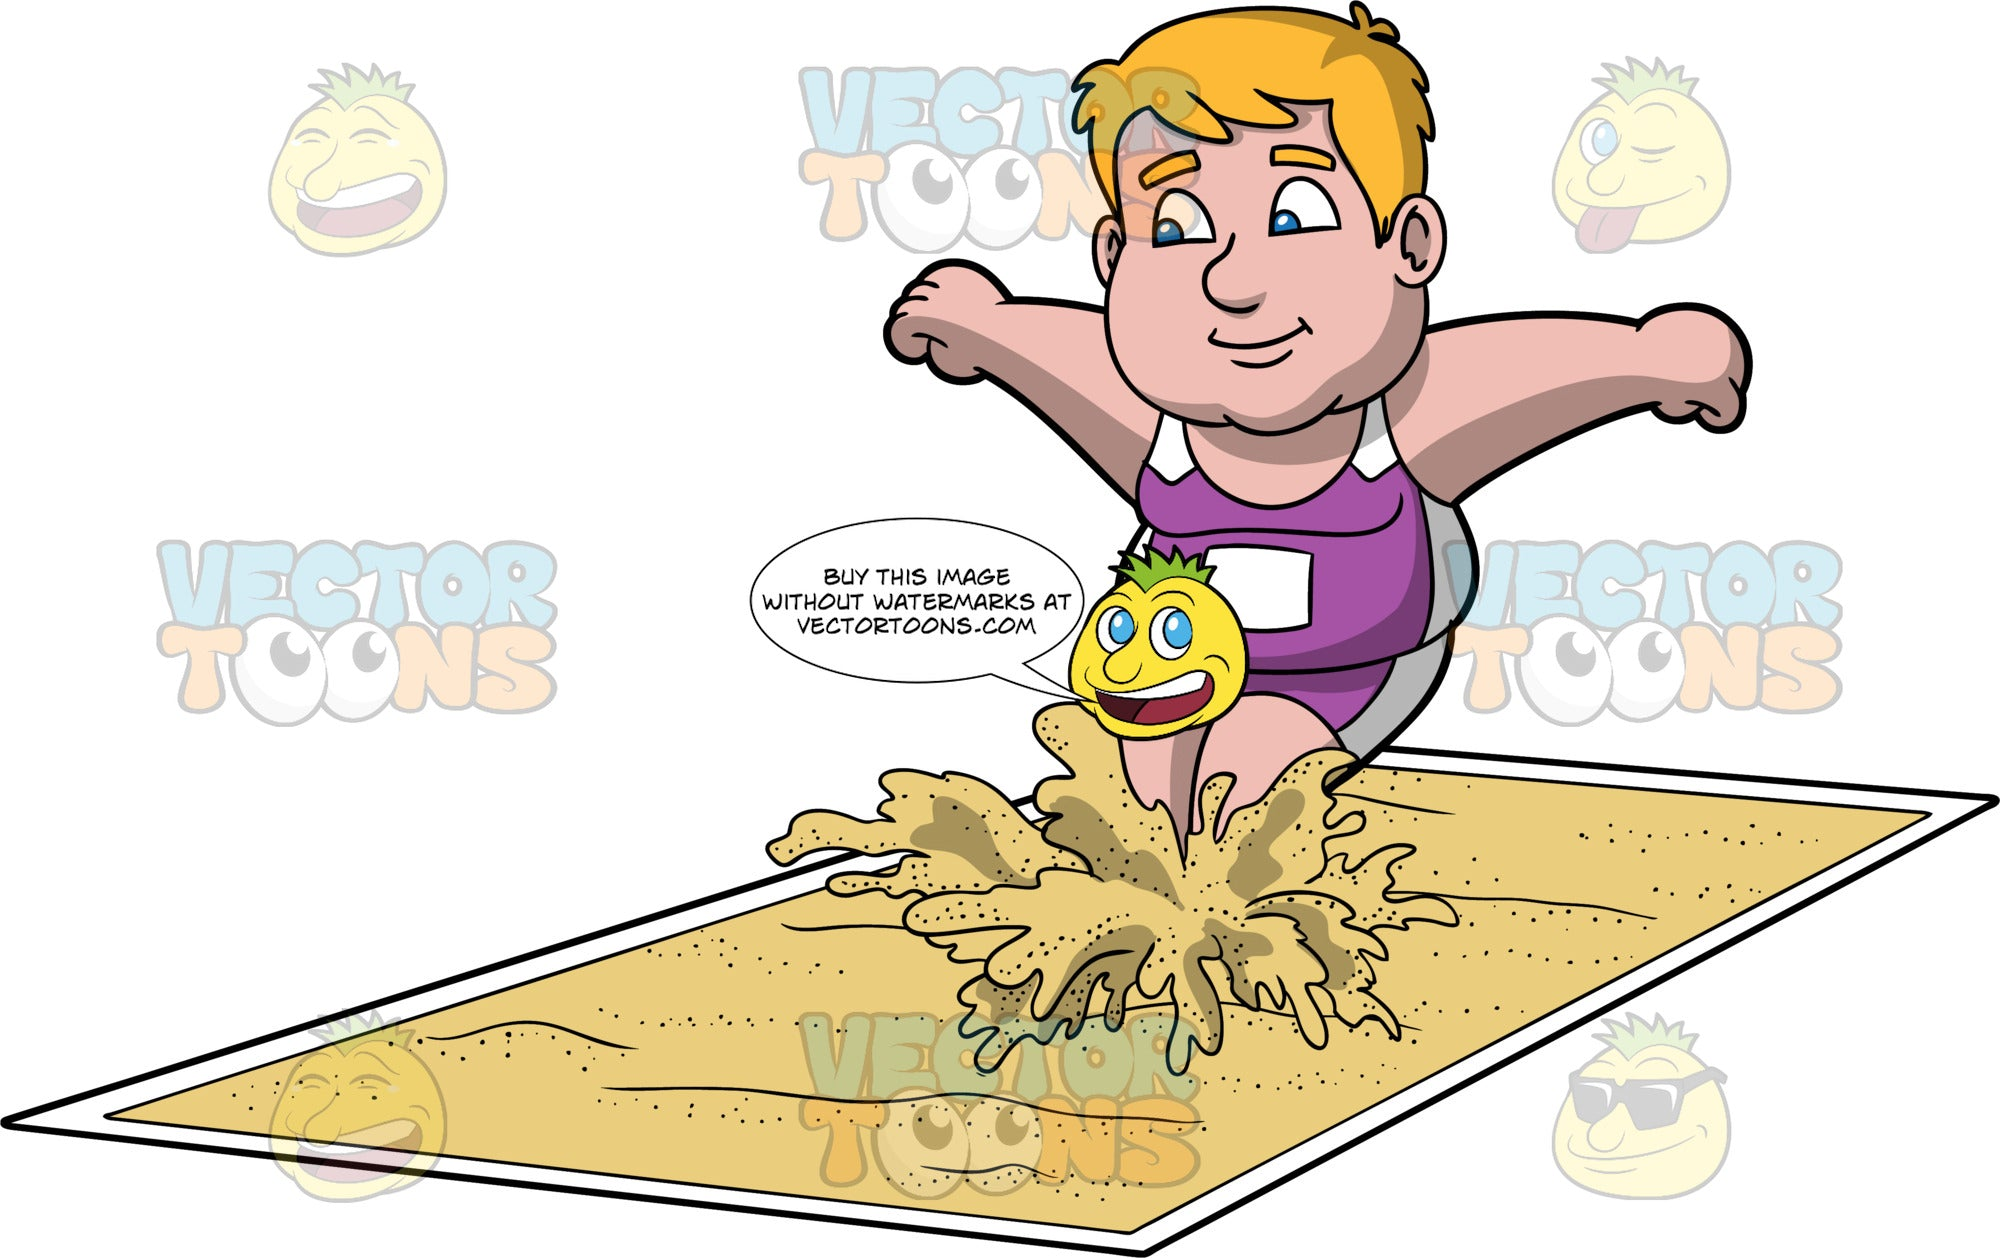 Sam Landing In The Long Jump Pit. A chubby man wearing purple and white shorts, and a purple and white tank top, lands feet first in a pit of sand during a long jump contest